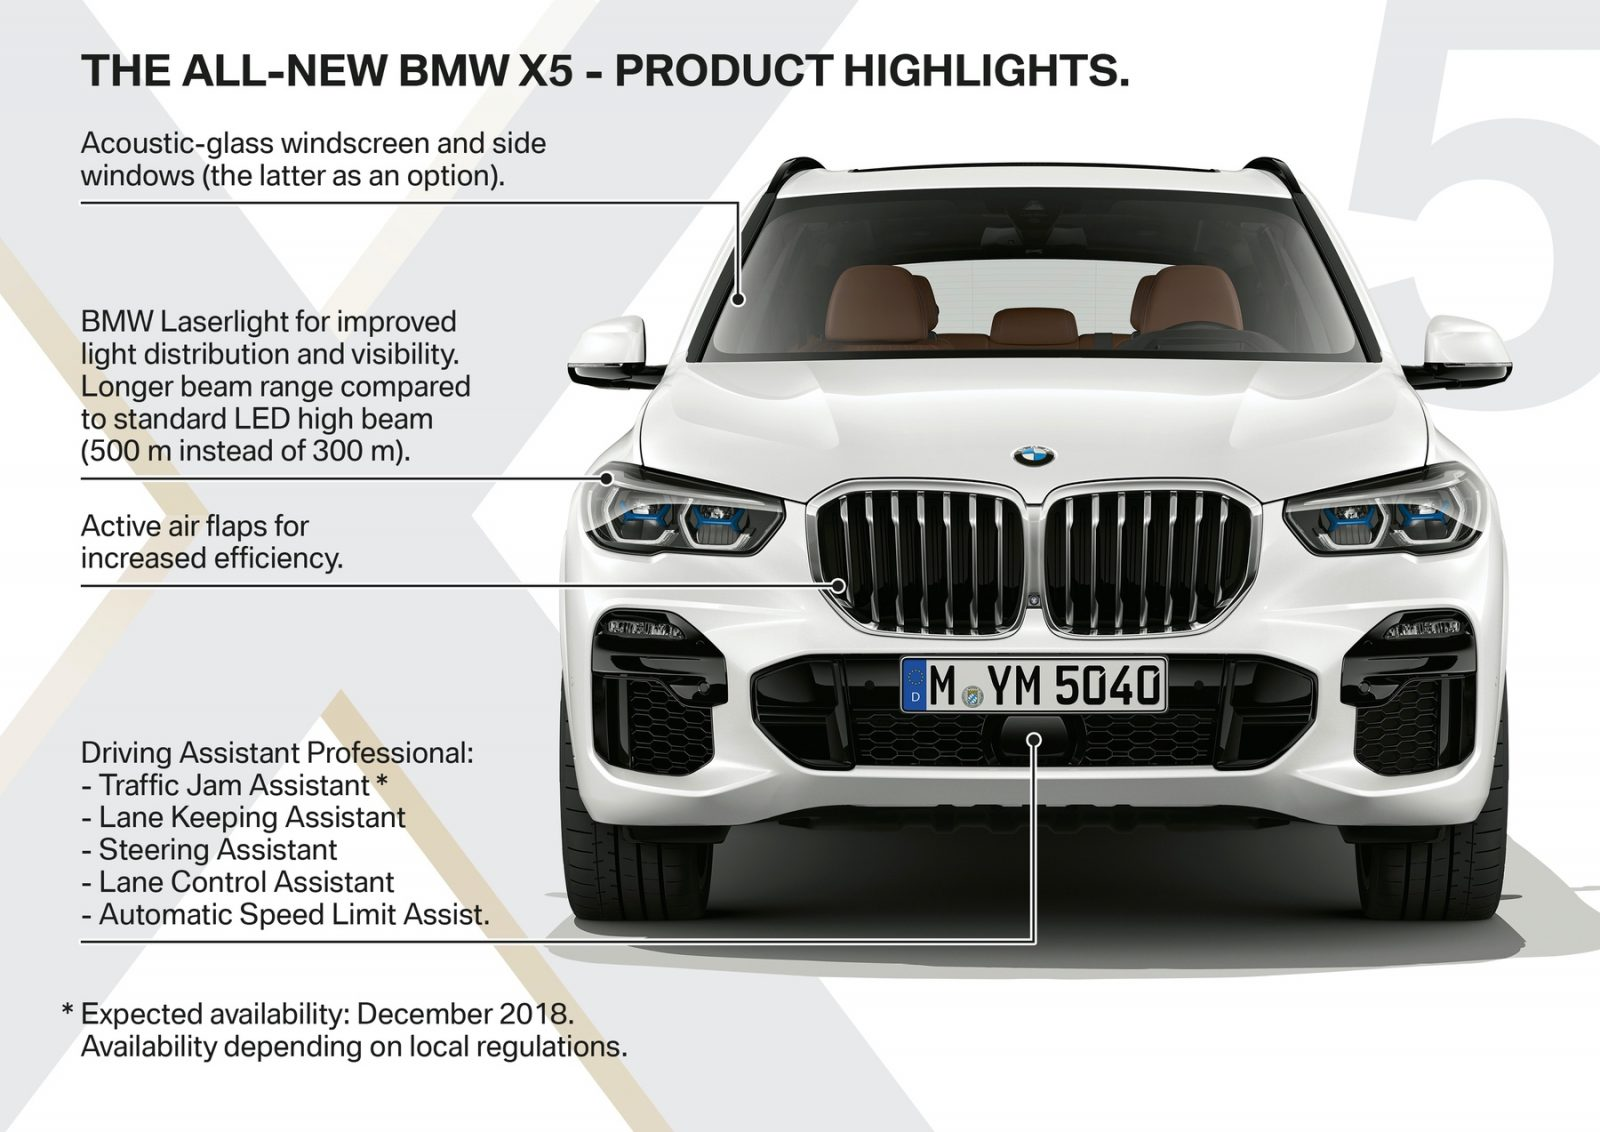 2019 Bmw X5 Buyers Guide And Official Pricing Bimmerfile